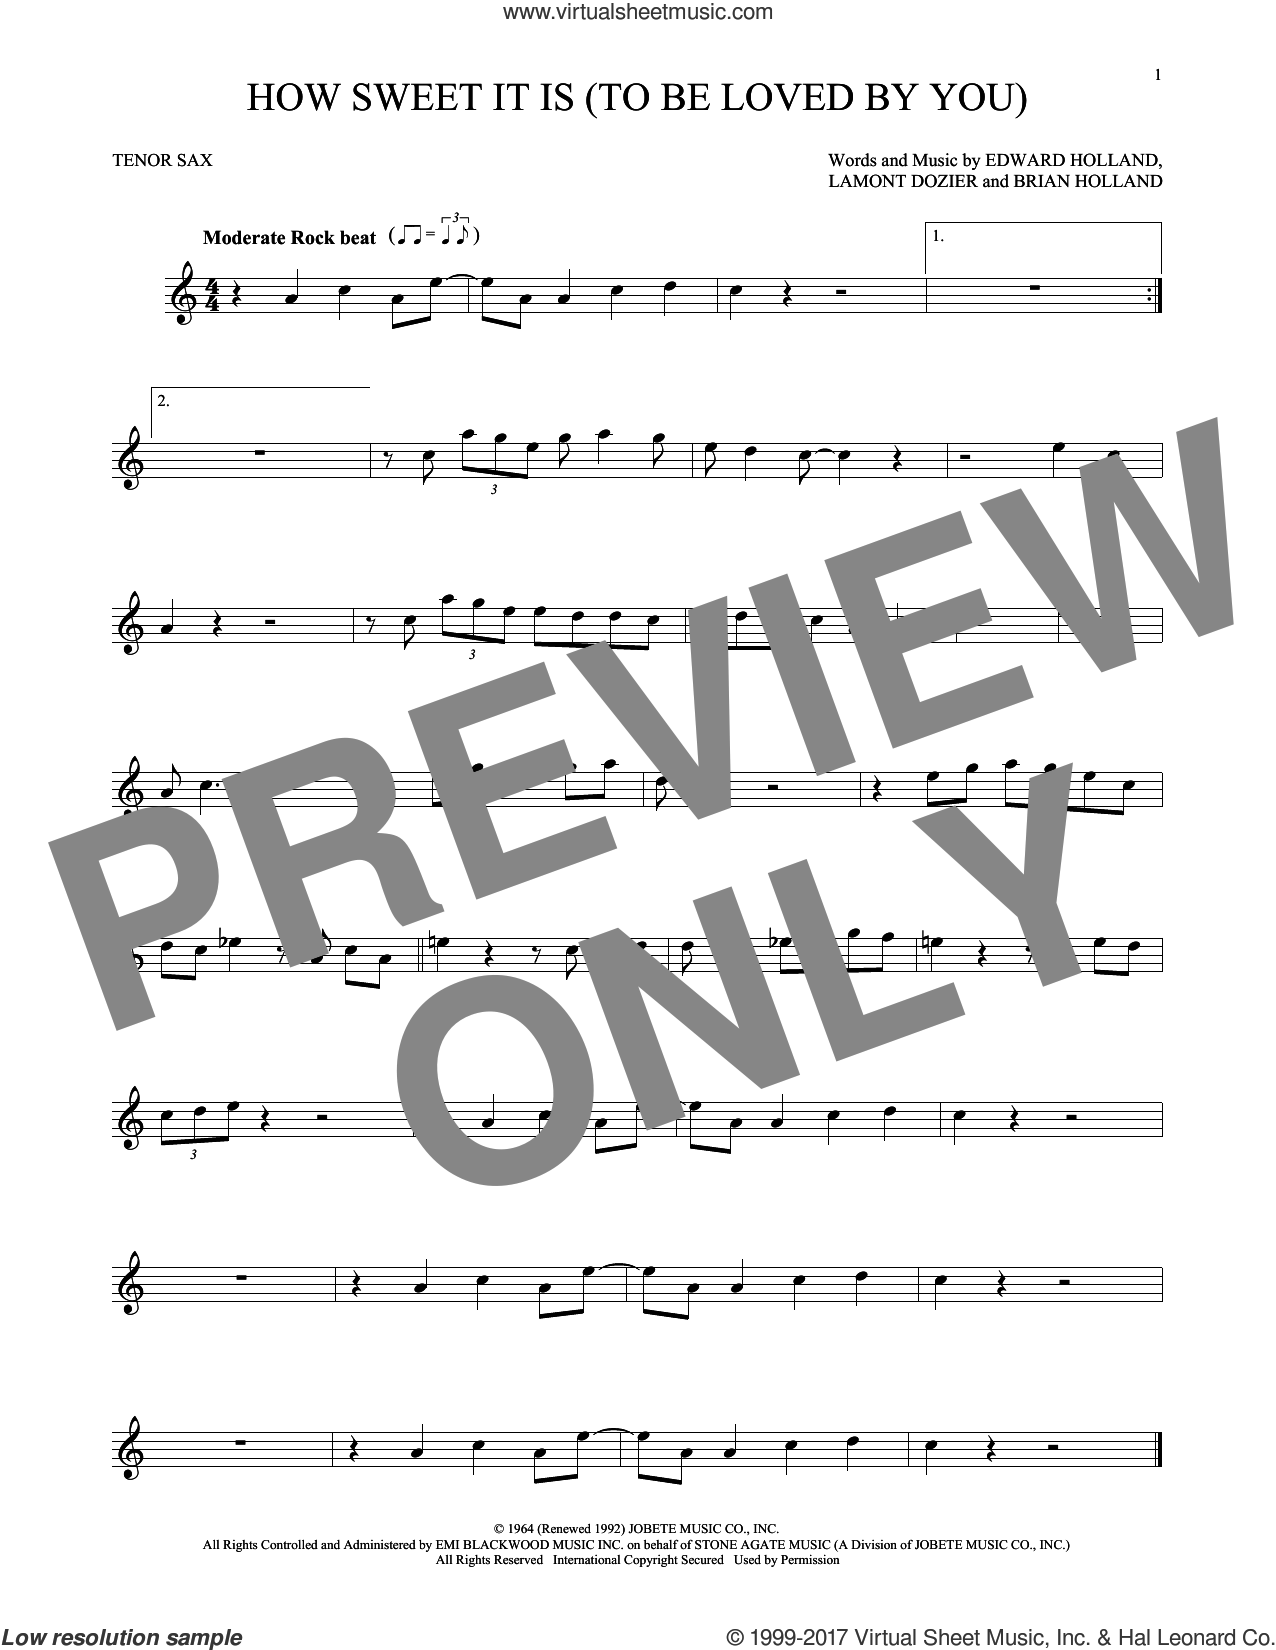 How Sweet It Is (To Be Loved By You) sheet music for tenor saxophone solo by James Taylor, Marvin Gaye, Brian Holland, Eddie Holland and Lamont Dozier, intermediate. Score Image Preview.